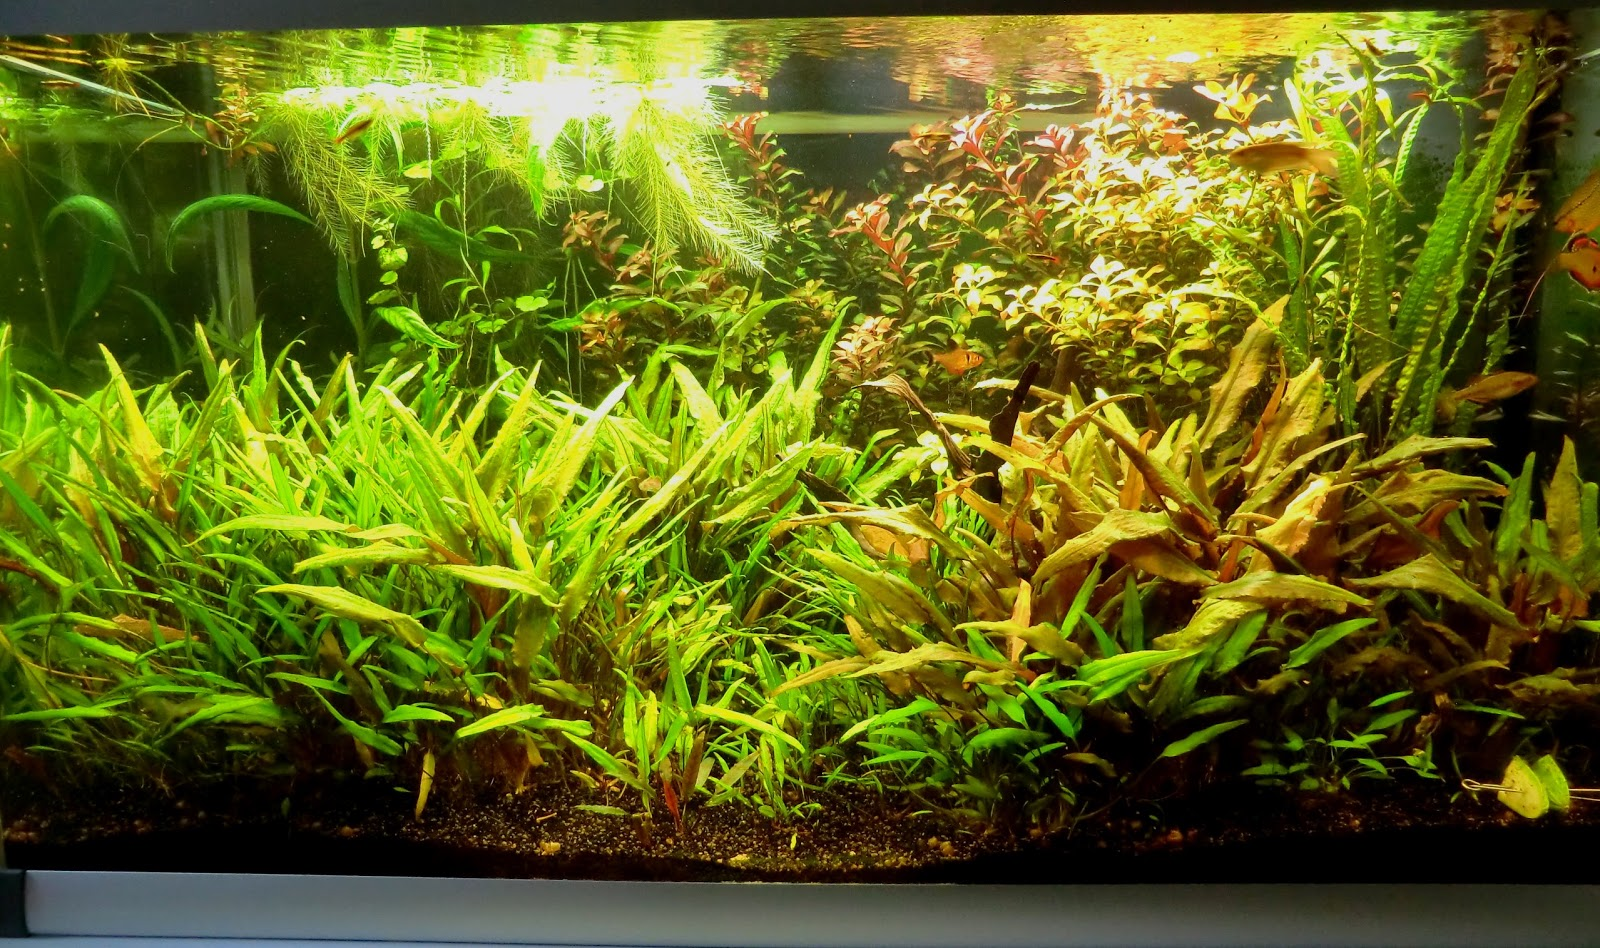 the fishtank cryptocoryne jungle 250 liters planted tank. Black Bedroom Furniture Sets. Home Design Ideas